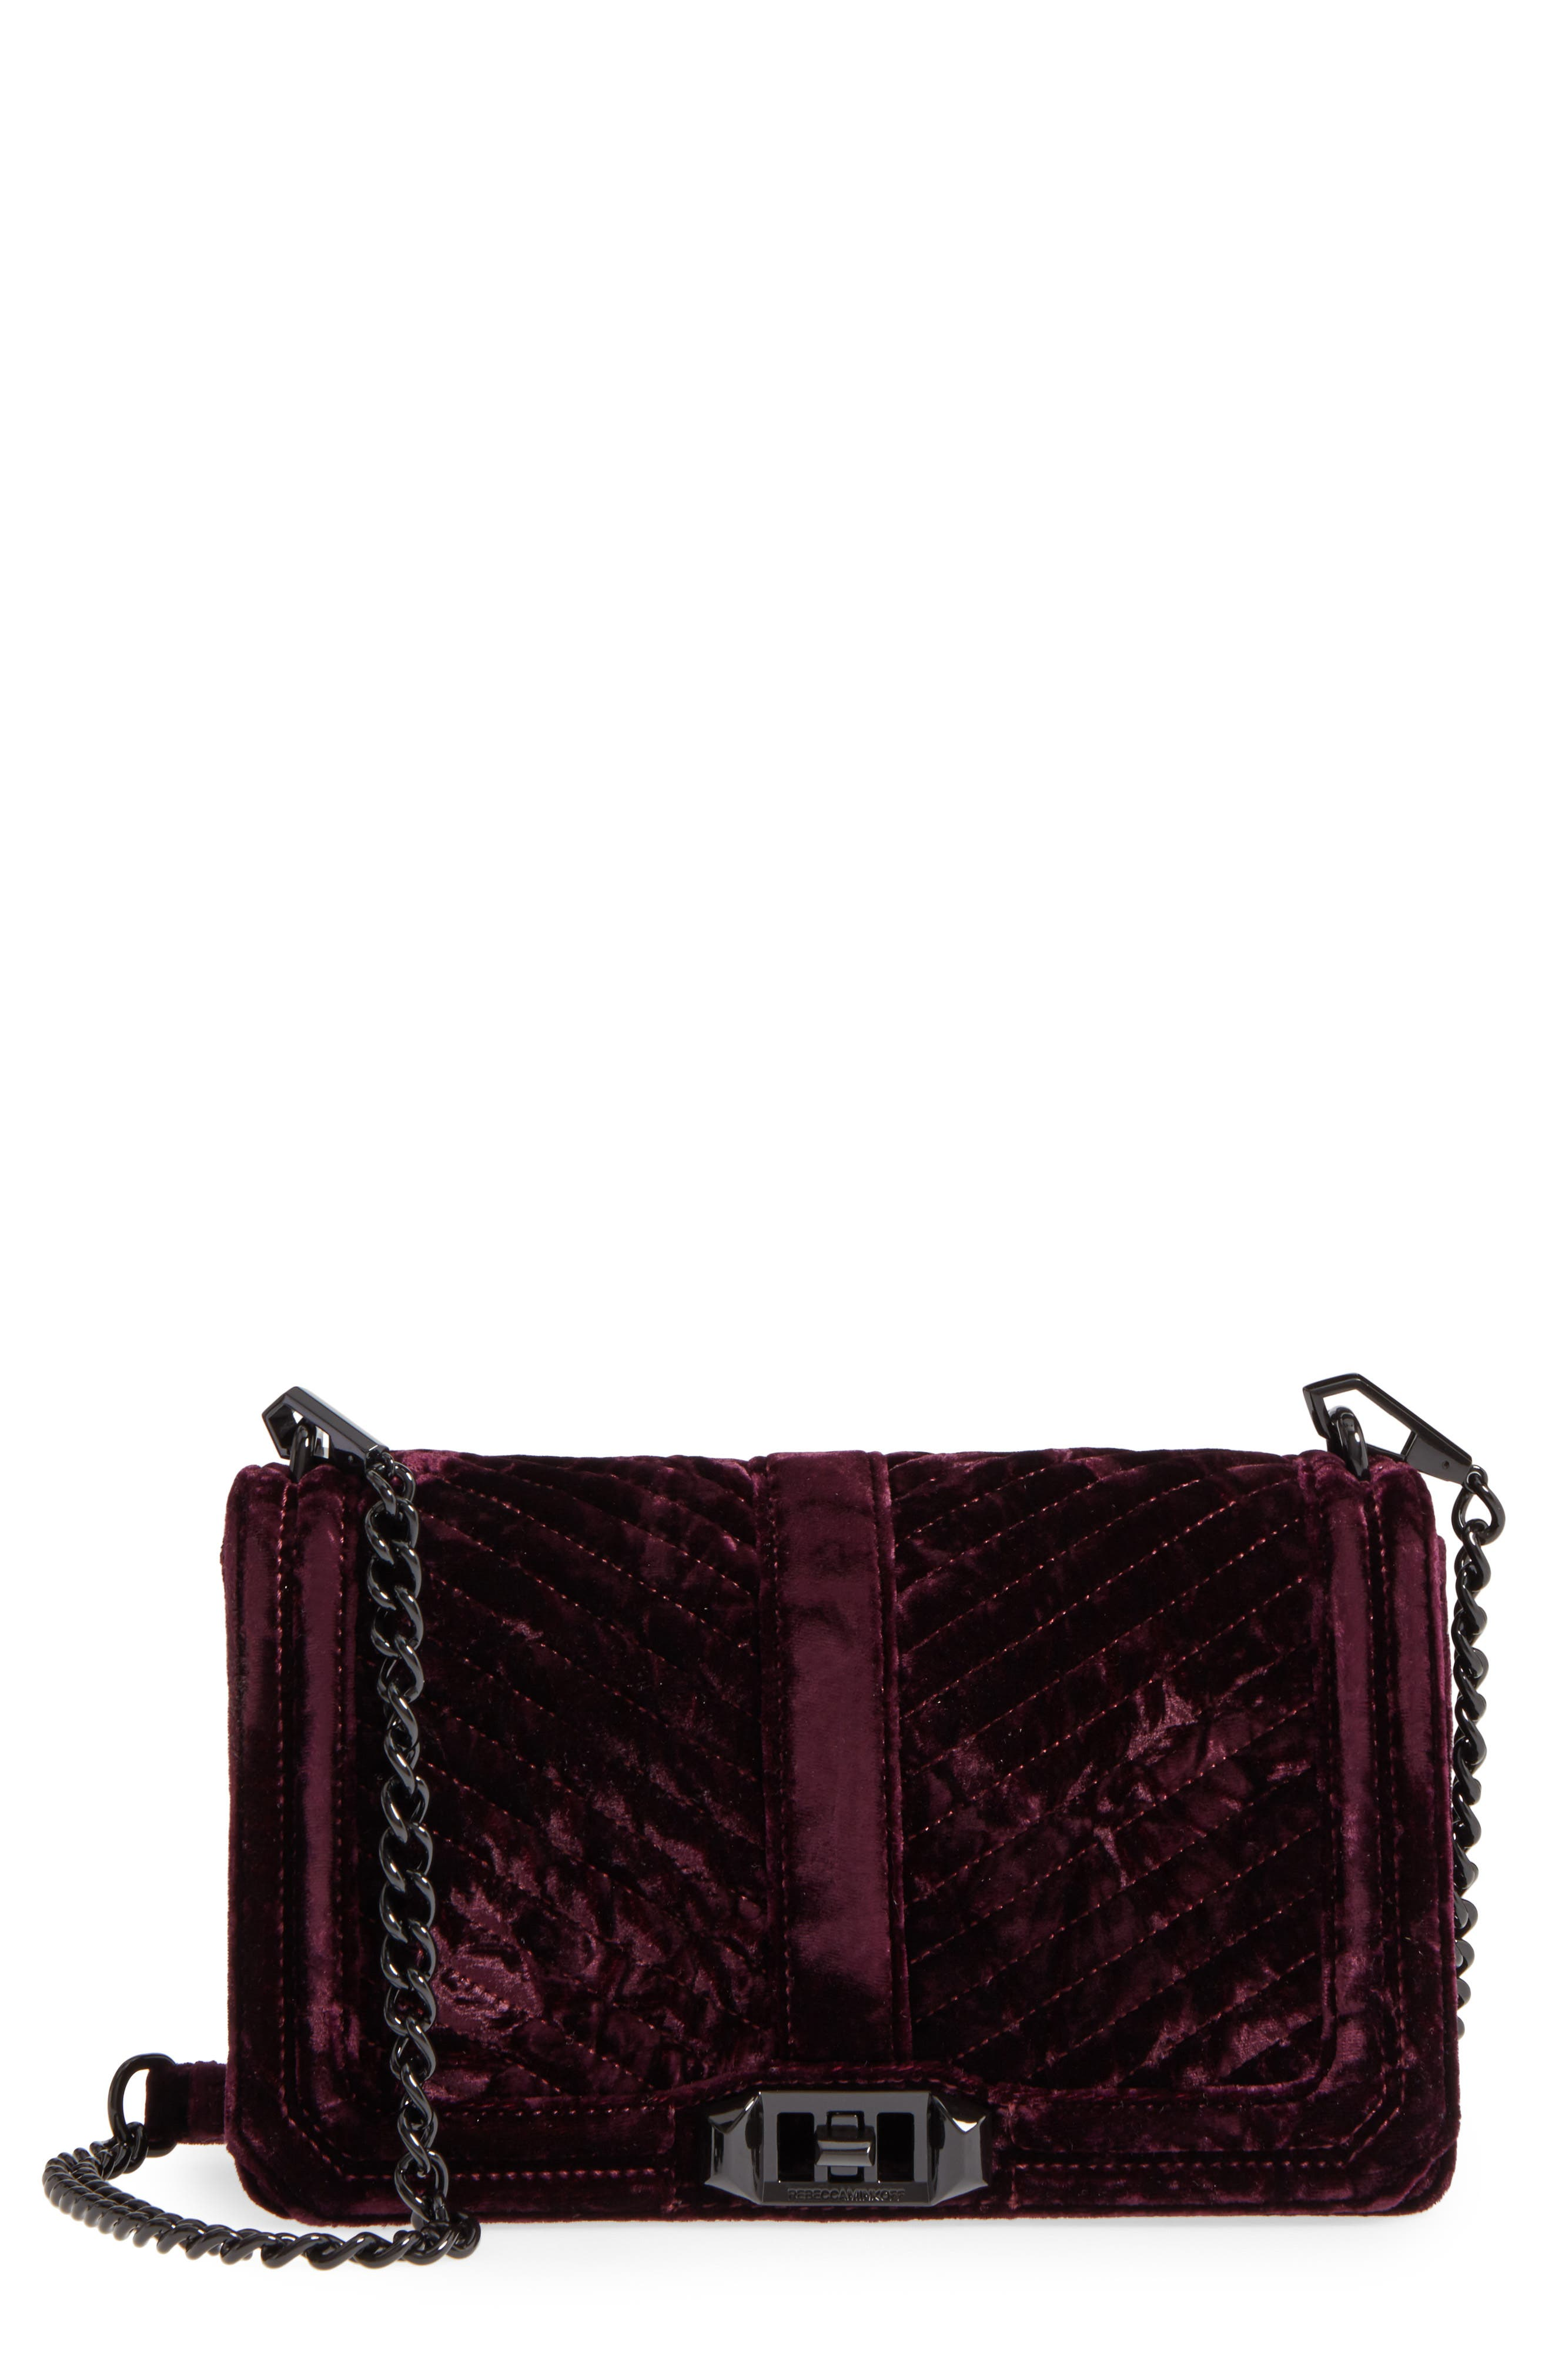 Rebecca Minkoff Love Velvet Quilted Crossbody Bag